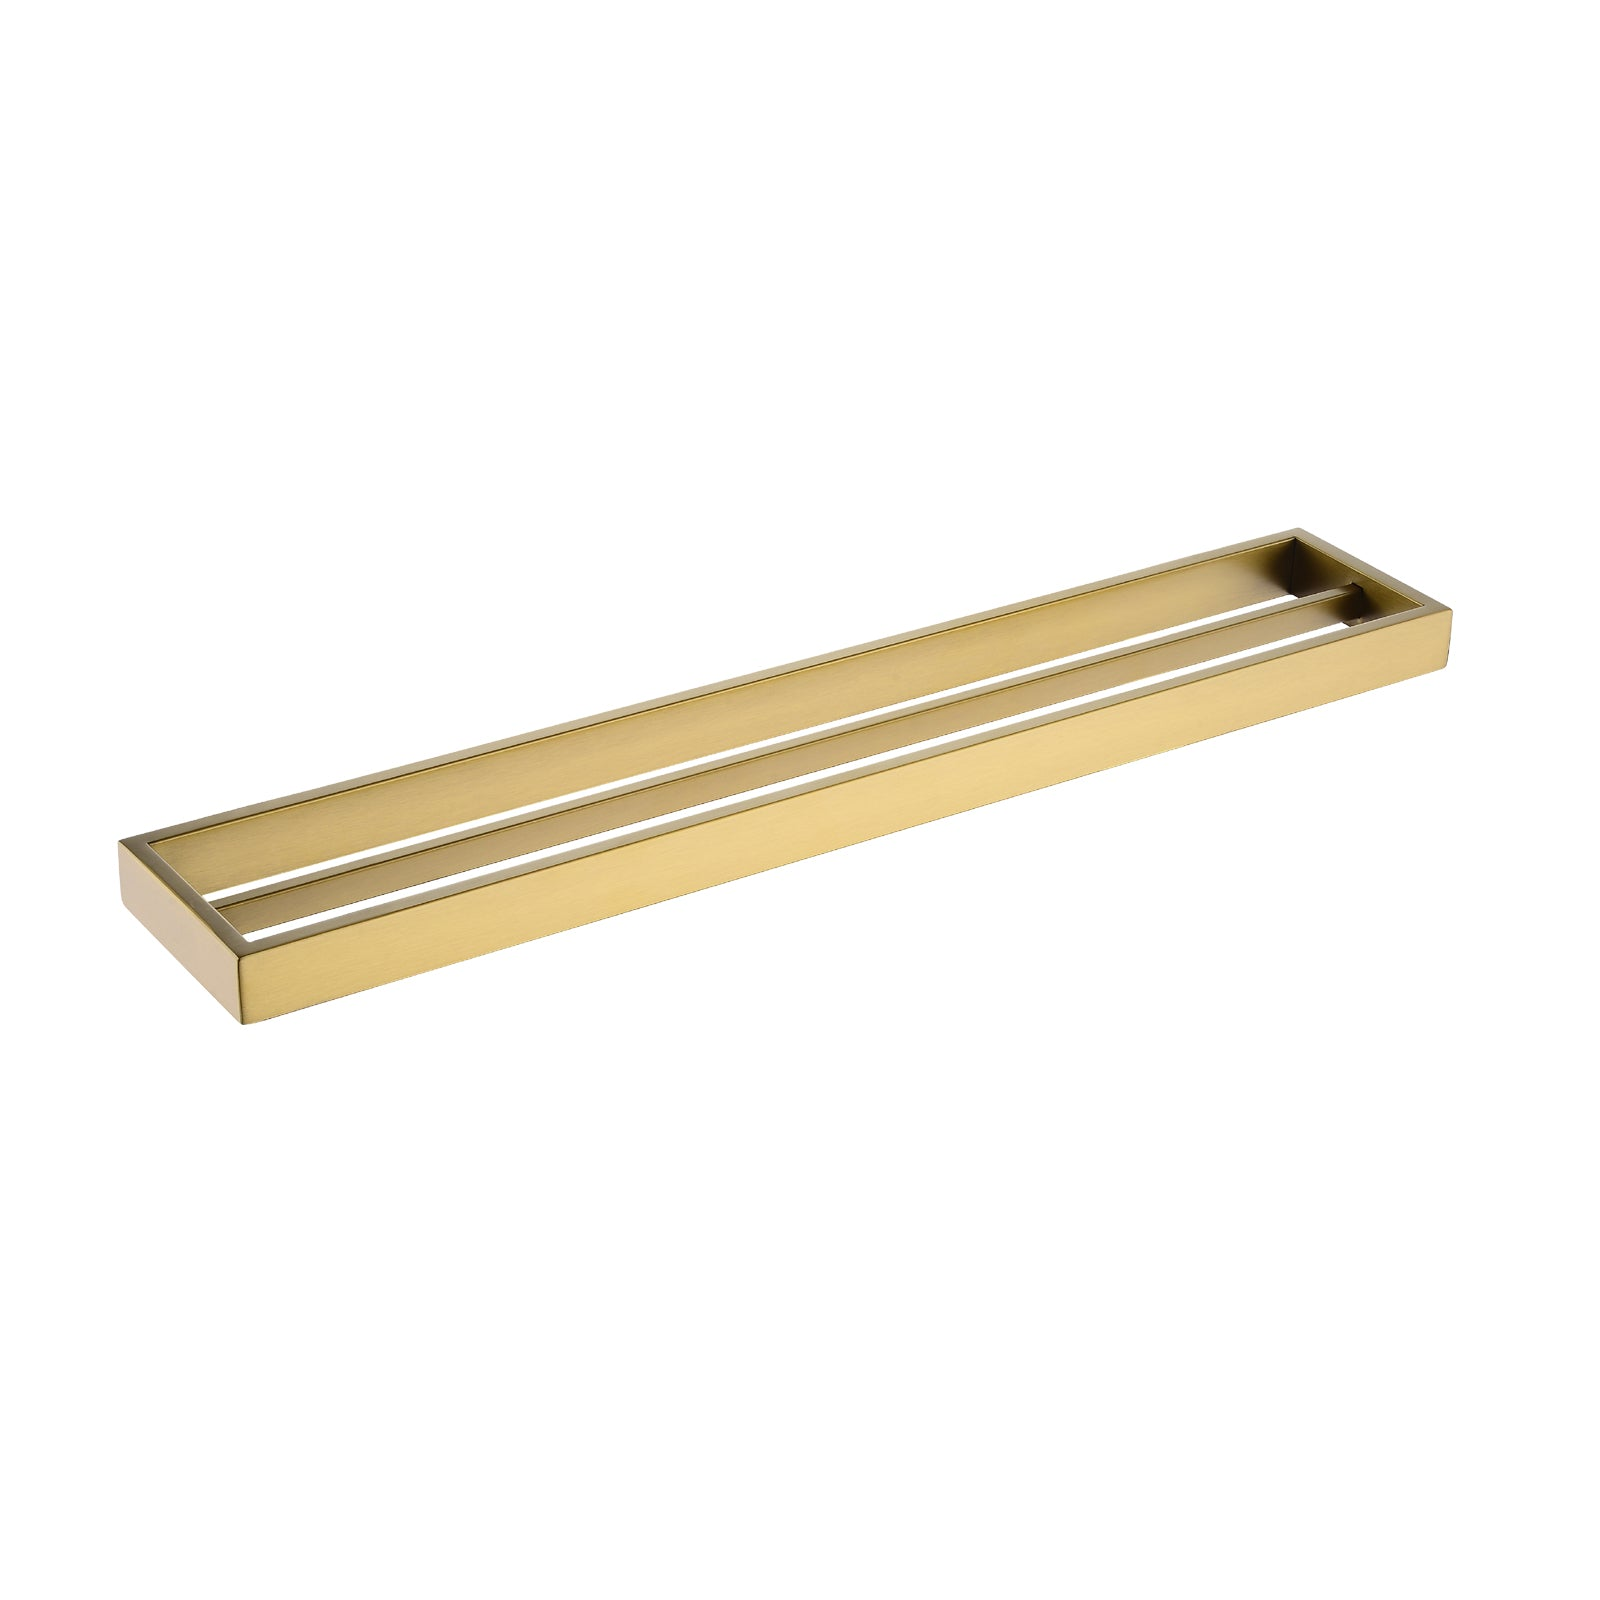 Norico Cavallo Brushed Yellow Gold Square Double Towel Rail 600mm